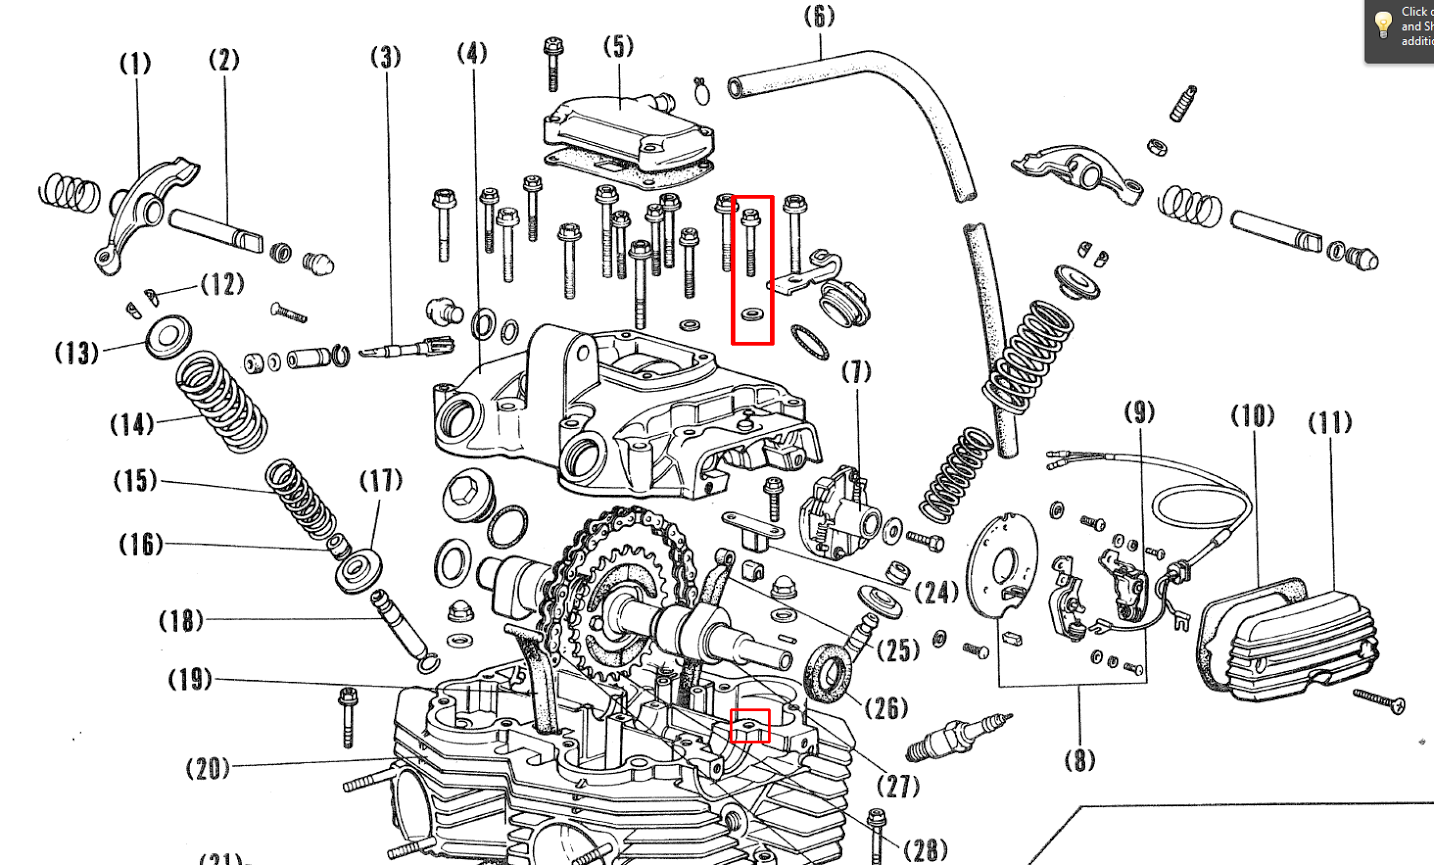 1975 honda cb360 engine wiring diagram